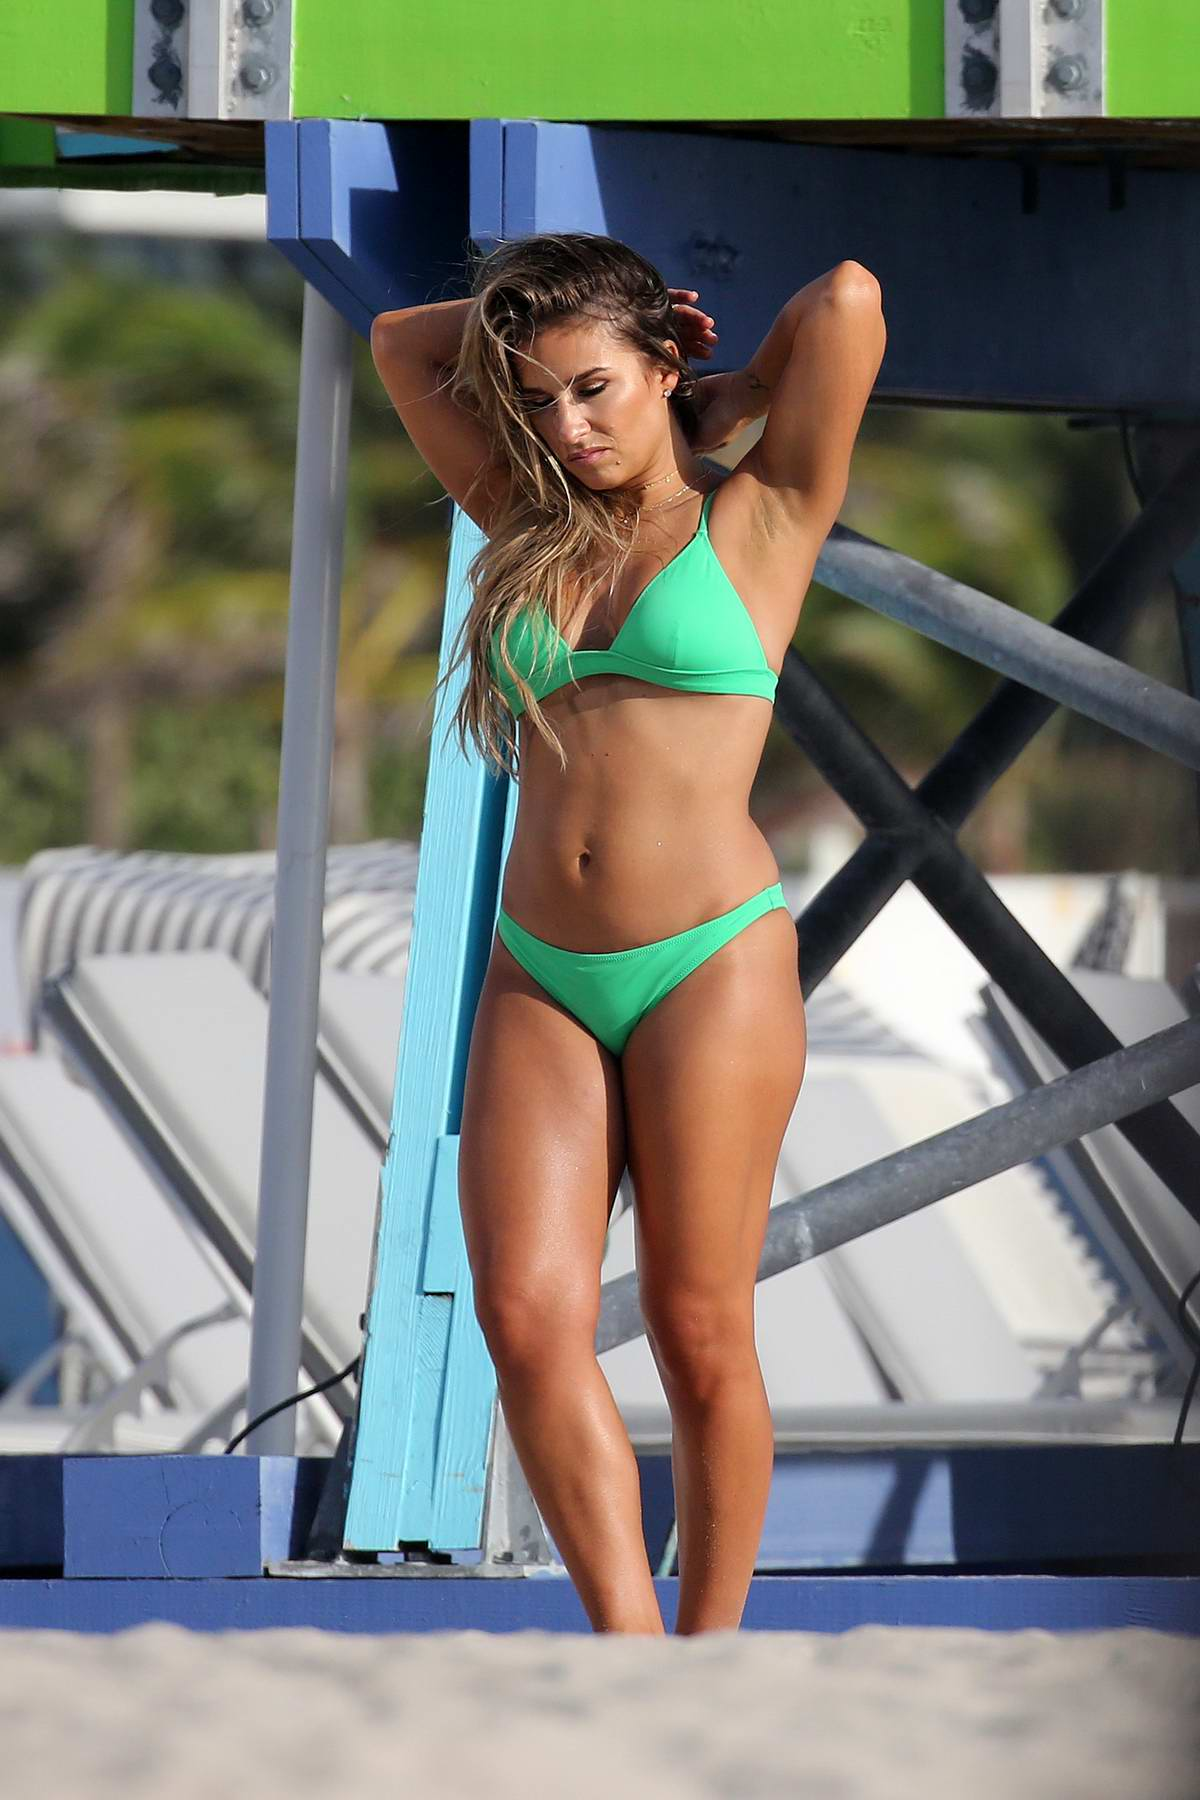 Jessie James Decker wears a bright green bikini while filming a commercial on Miami beach, Florida